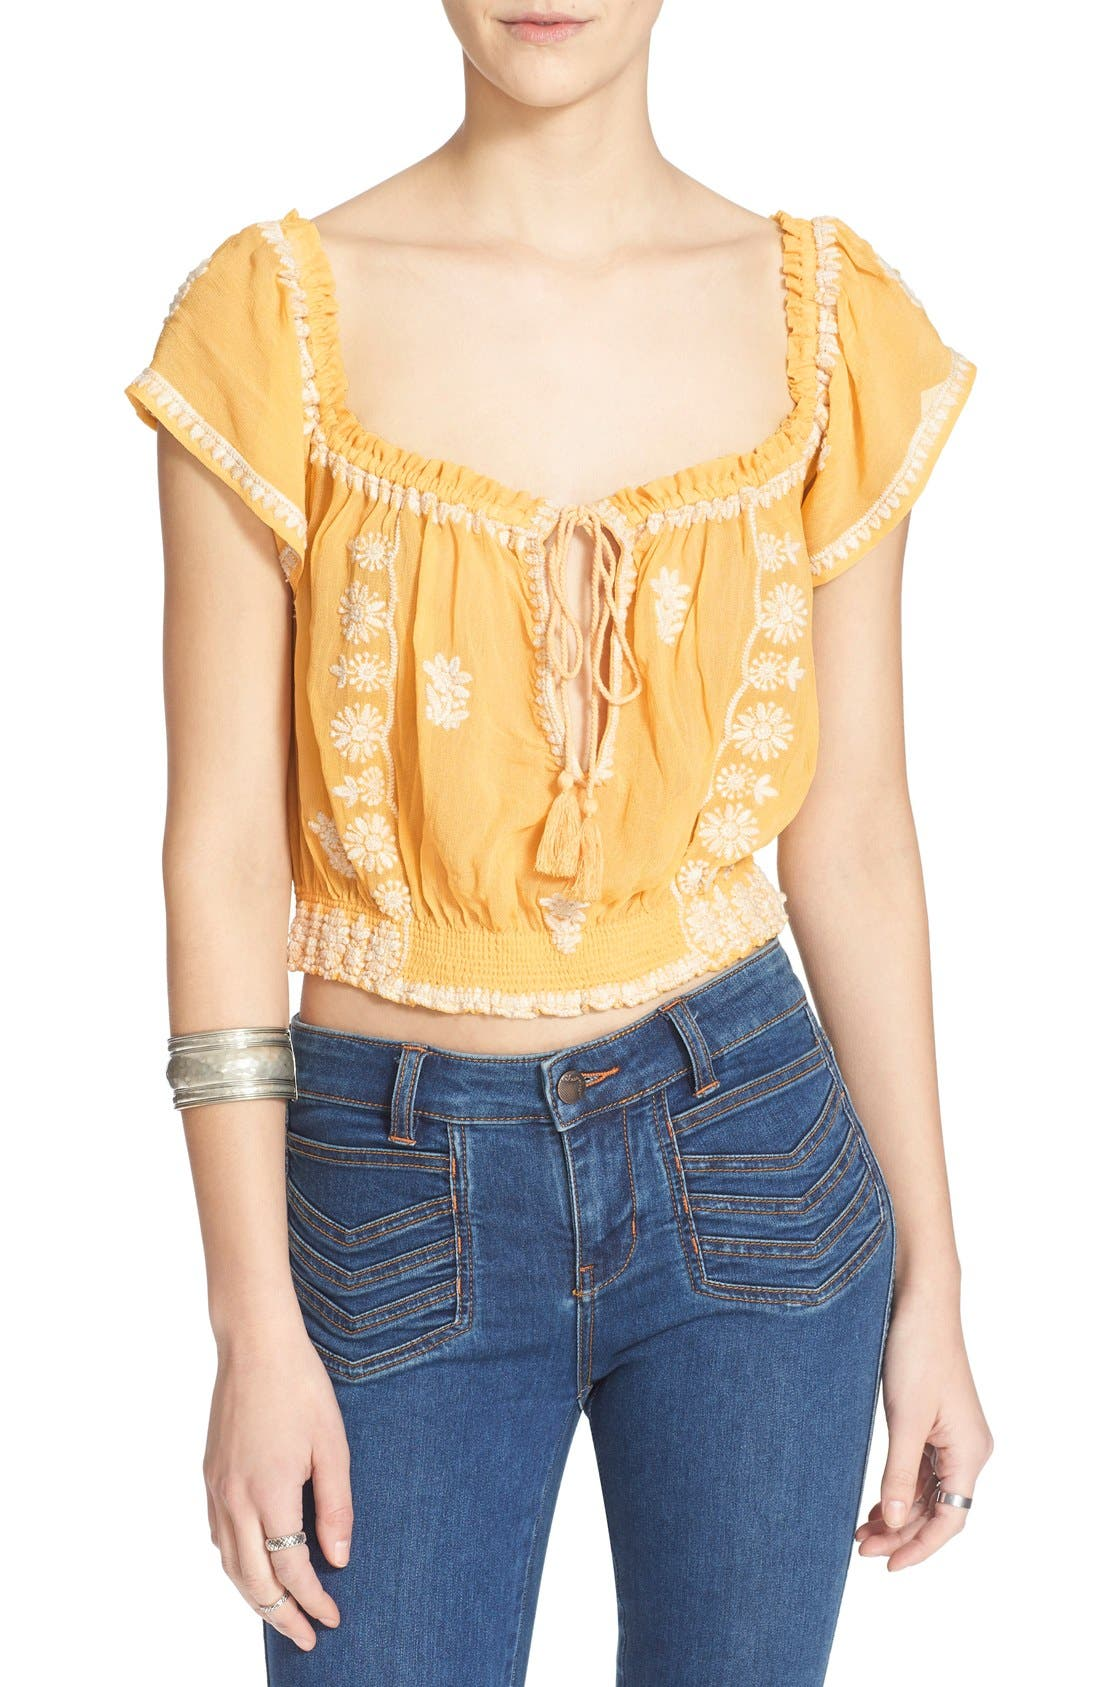 FREE PEOPLE,                             'Paisley Park' Peasant Top,                             Alternate thumbnail 5, color,                             771